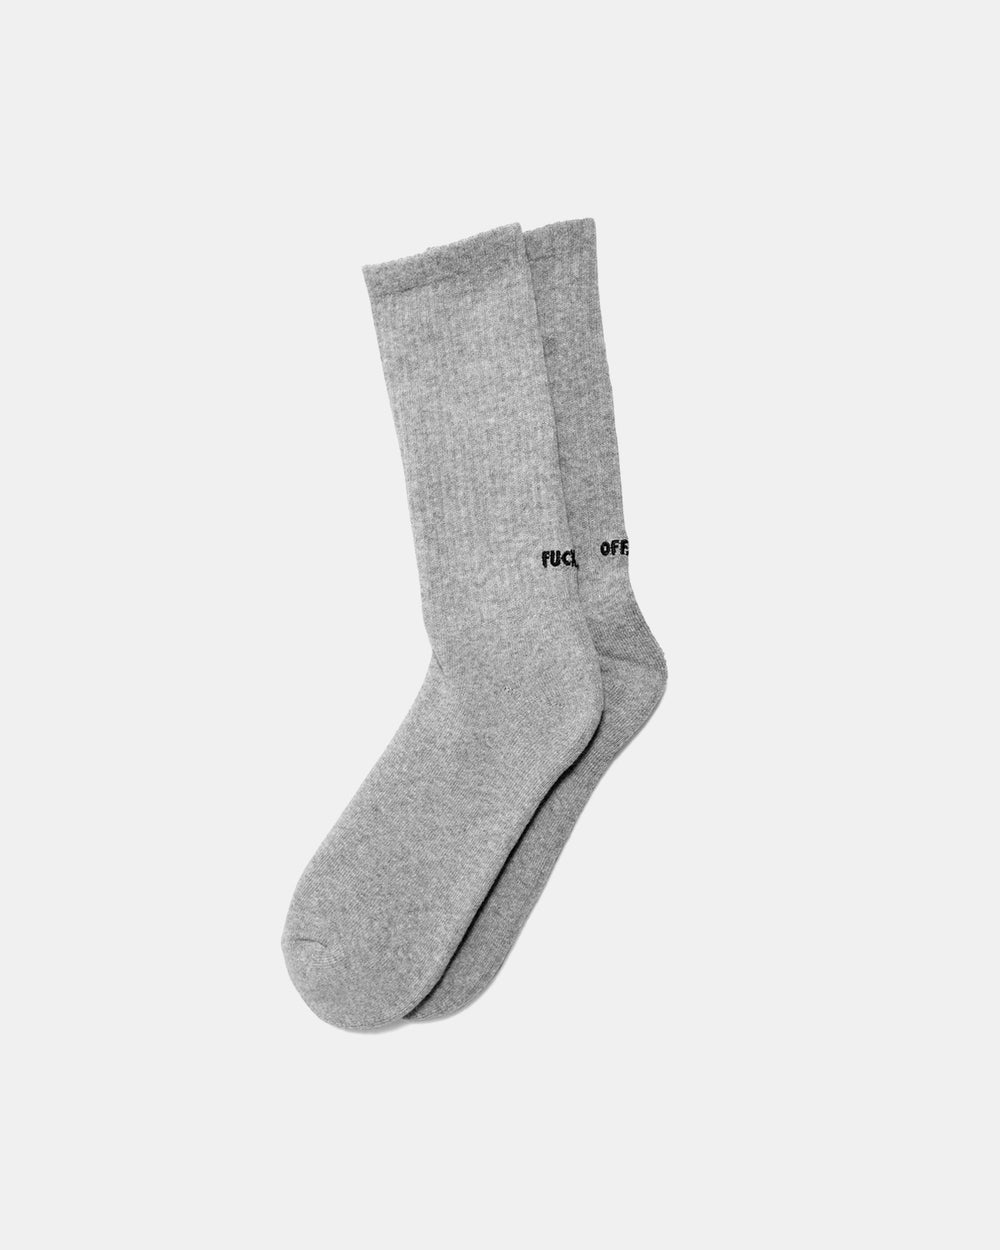 Raised by Wolves - Fuck Off Socks (Heather Grey)